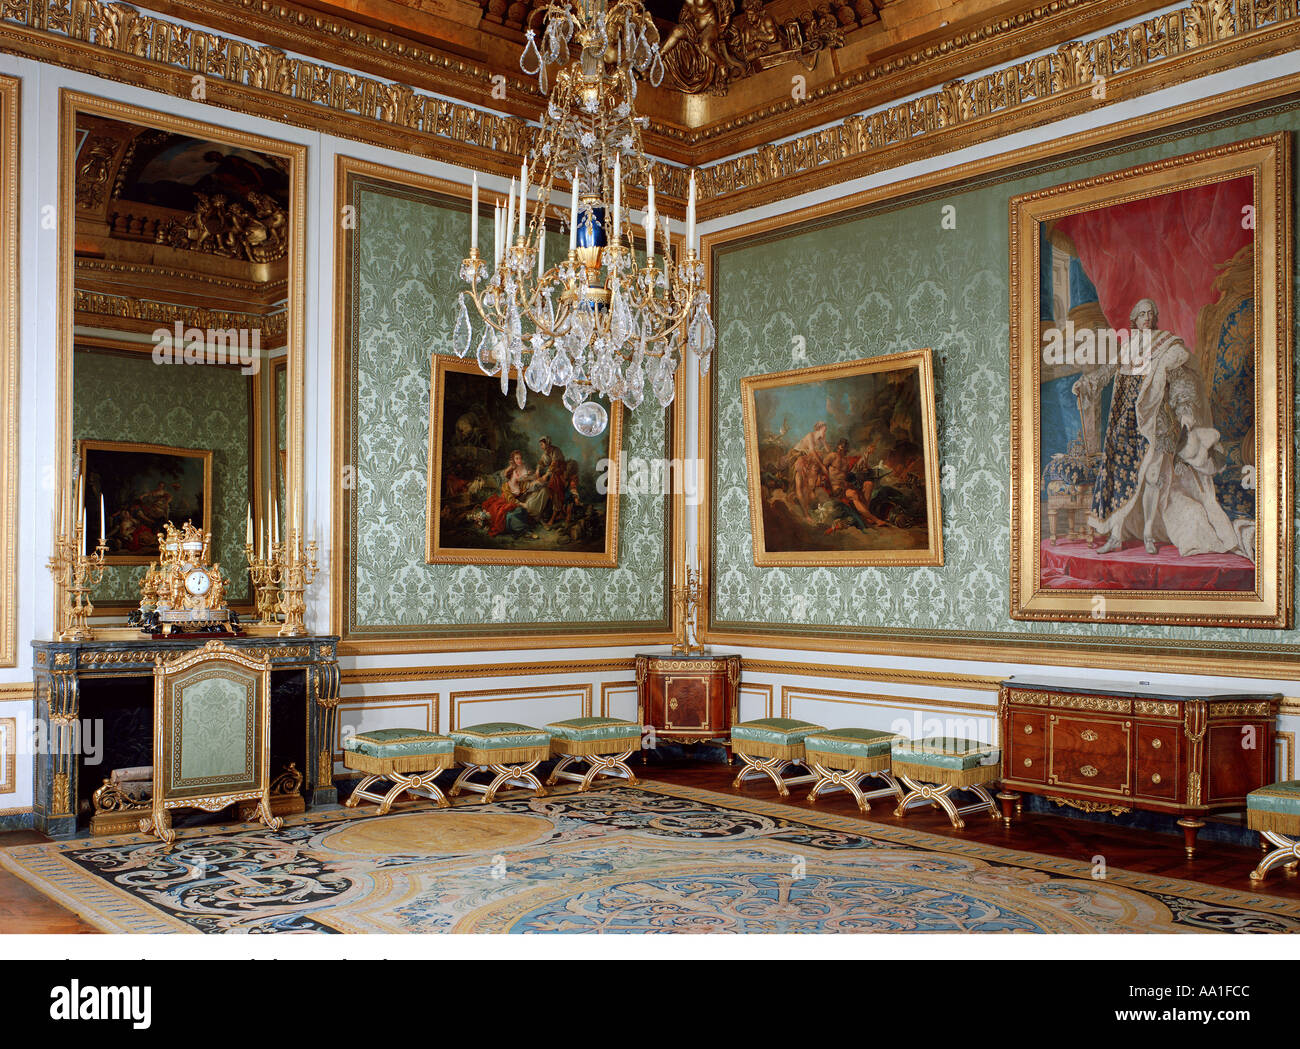 Palace of versailles salon des nobles de la reine stock for Salon de versailles